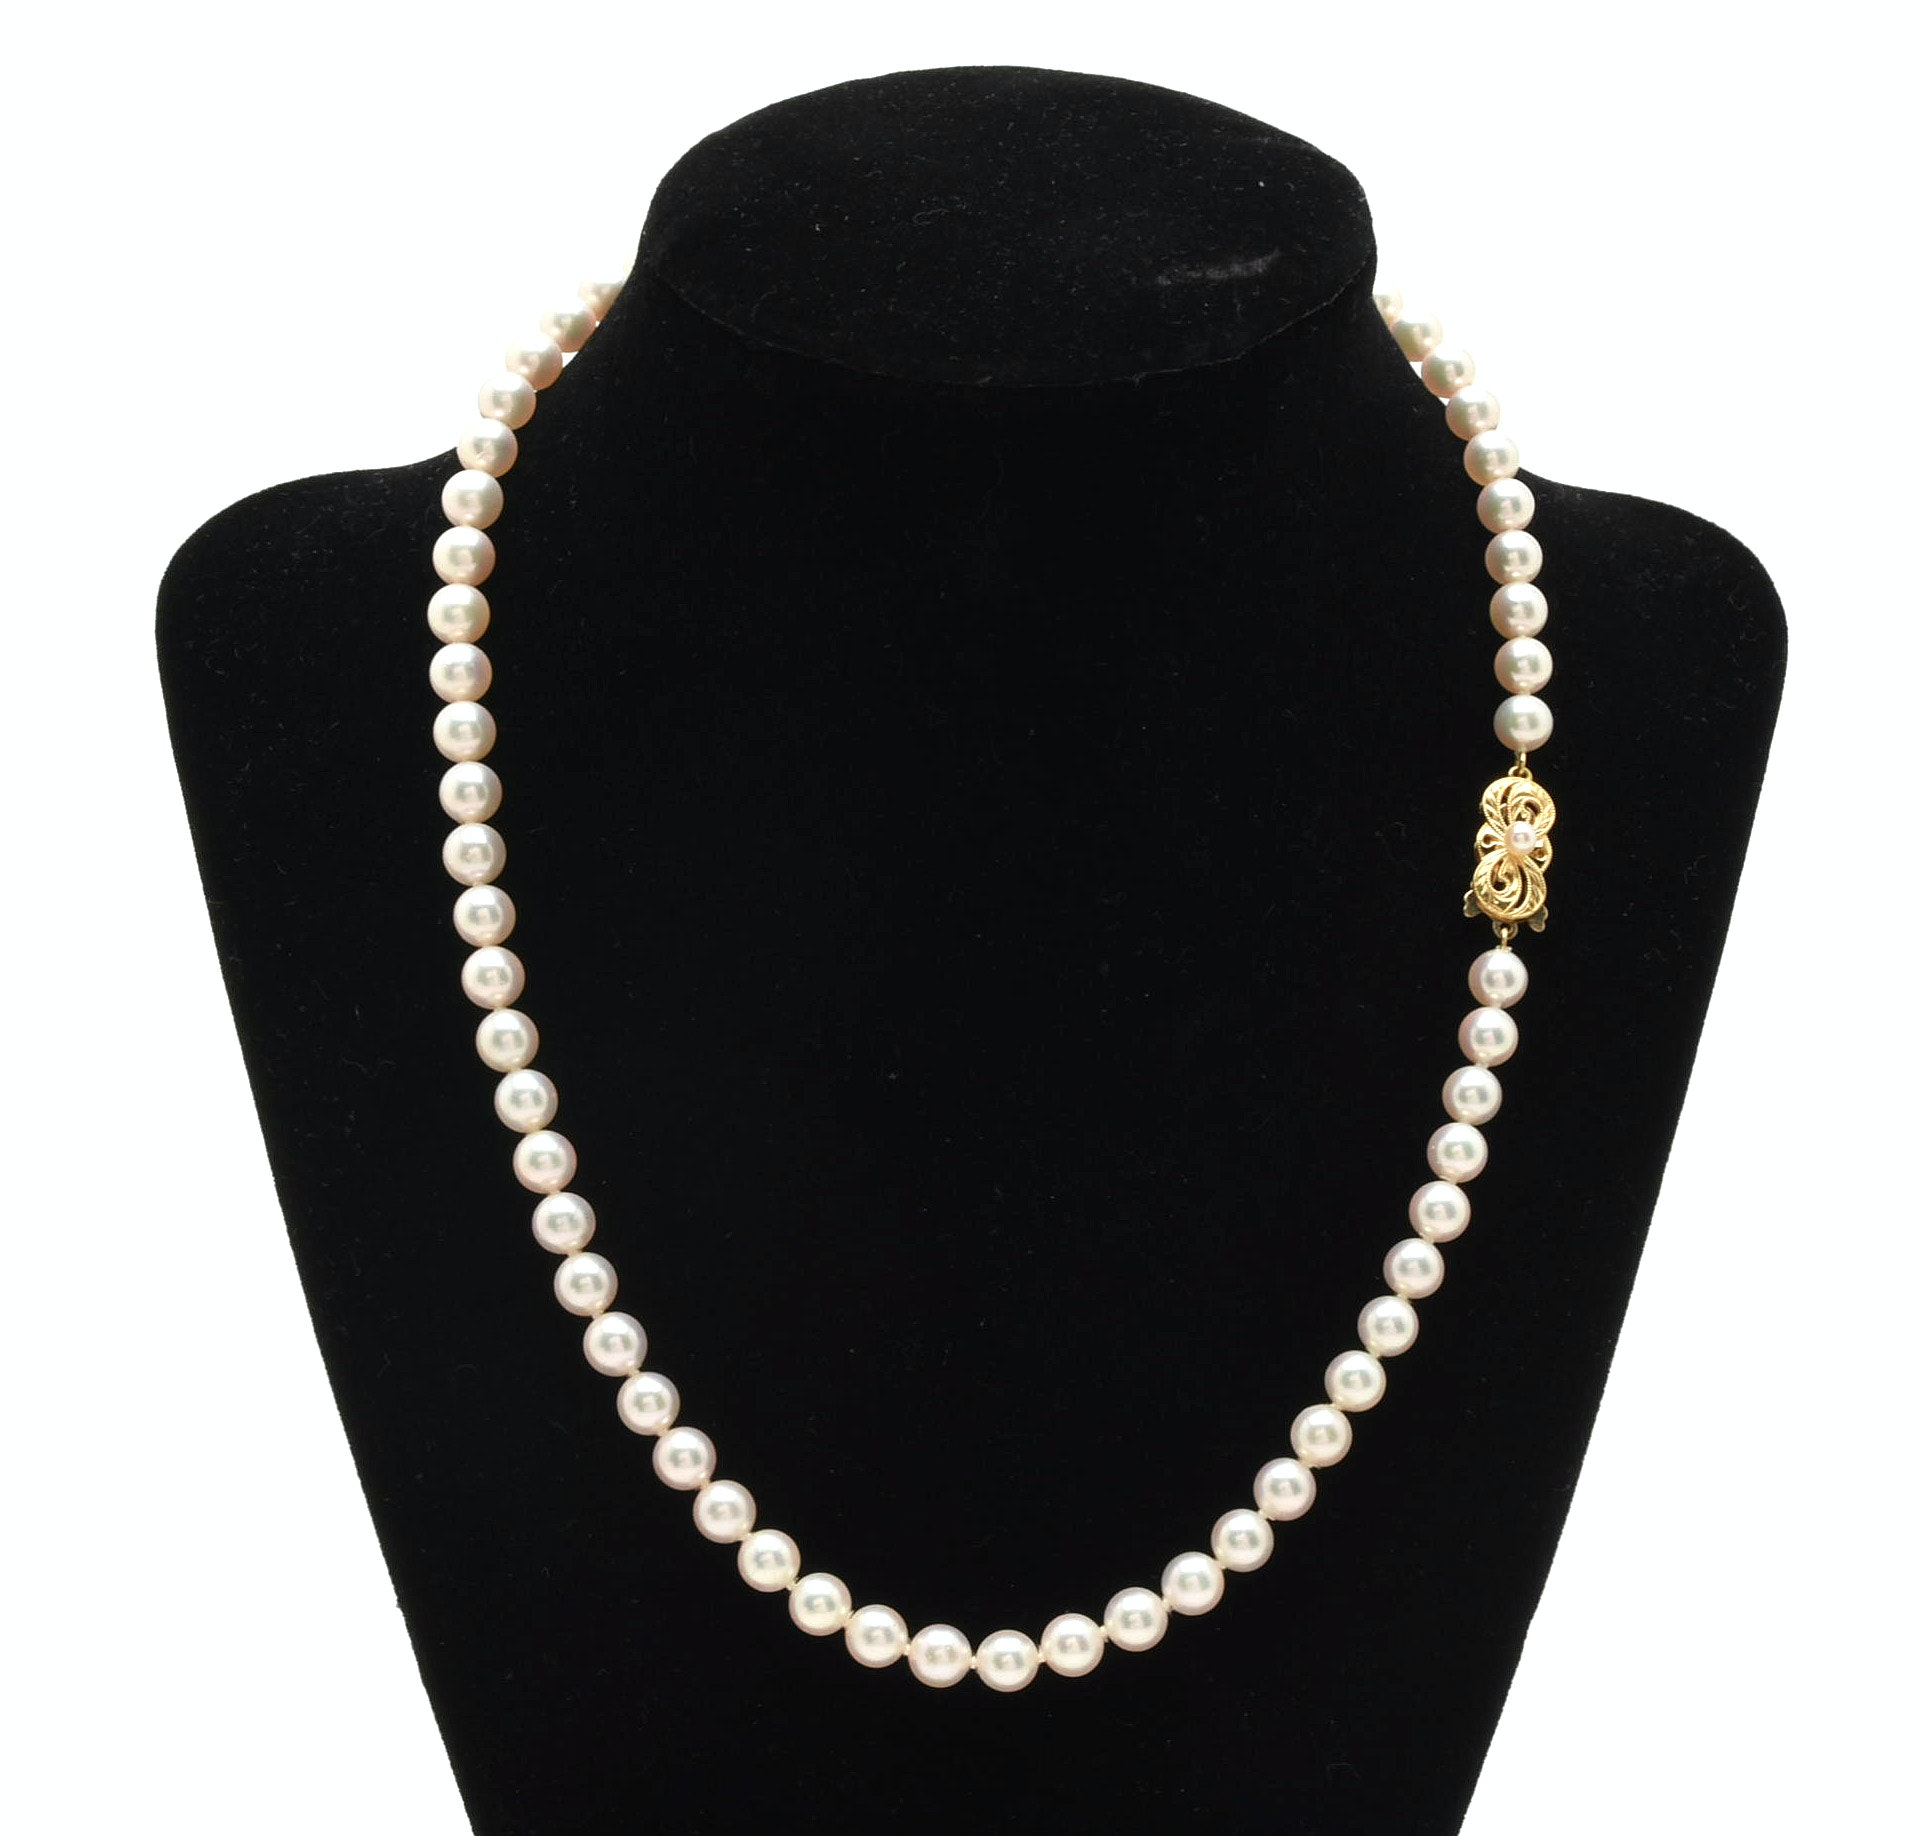 Mikimoto Cultured Pearl Single Strand Necklace with 18K Yellow Gold Clasp